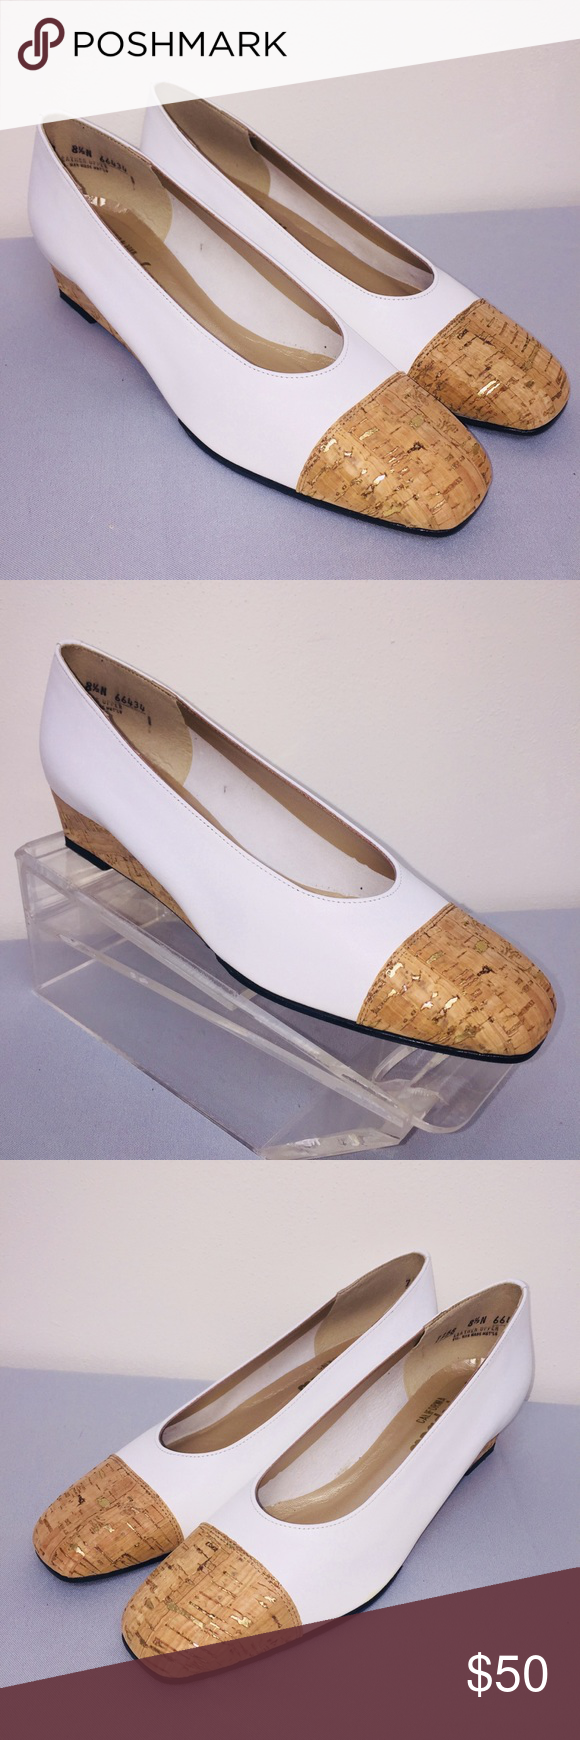 56ed7427b444d Magdesians NWB white wedges leather Sz 8.5 New. Excellent. NWB magdesians Shoes  Wedges